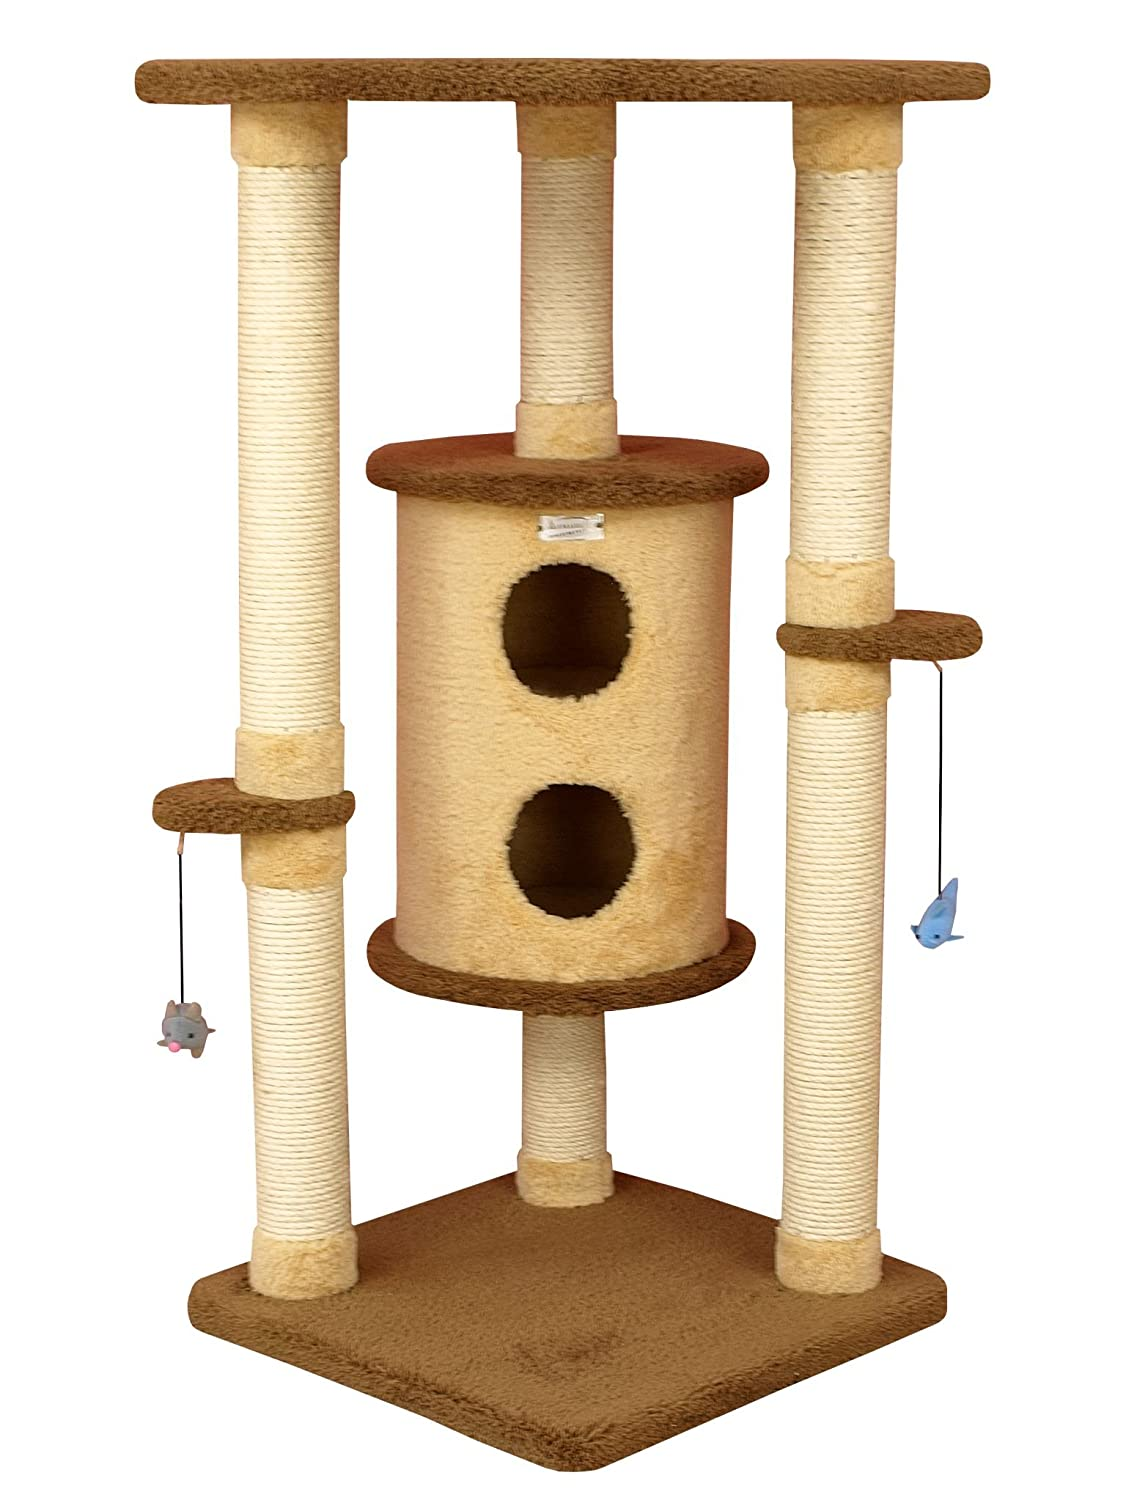 24\ Armarkat Premium Cat Tree X4401 Glodenrod and Tan